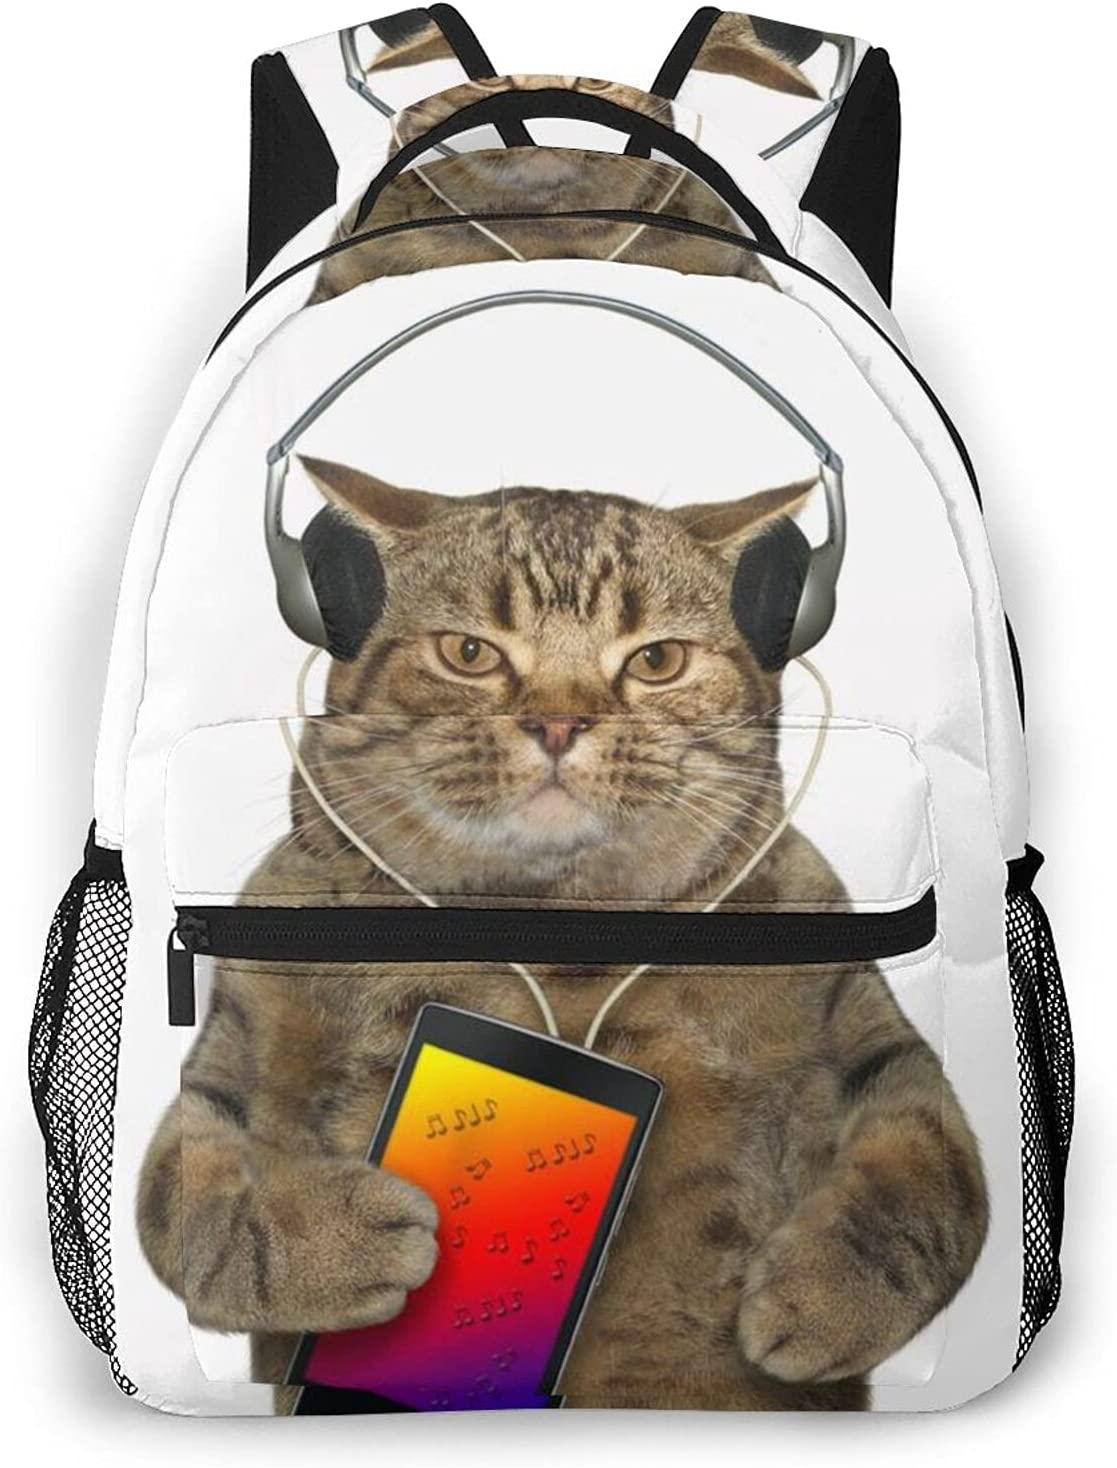 Black Direct store Angry Cute Chubby Cat With Listening L Quality inspection To Headphones Music